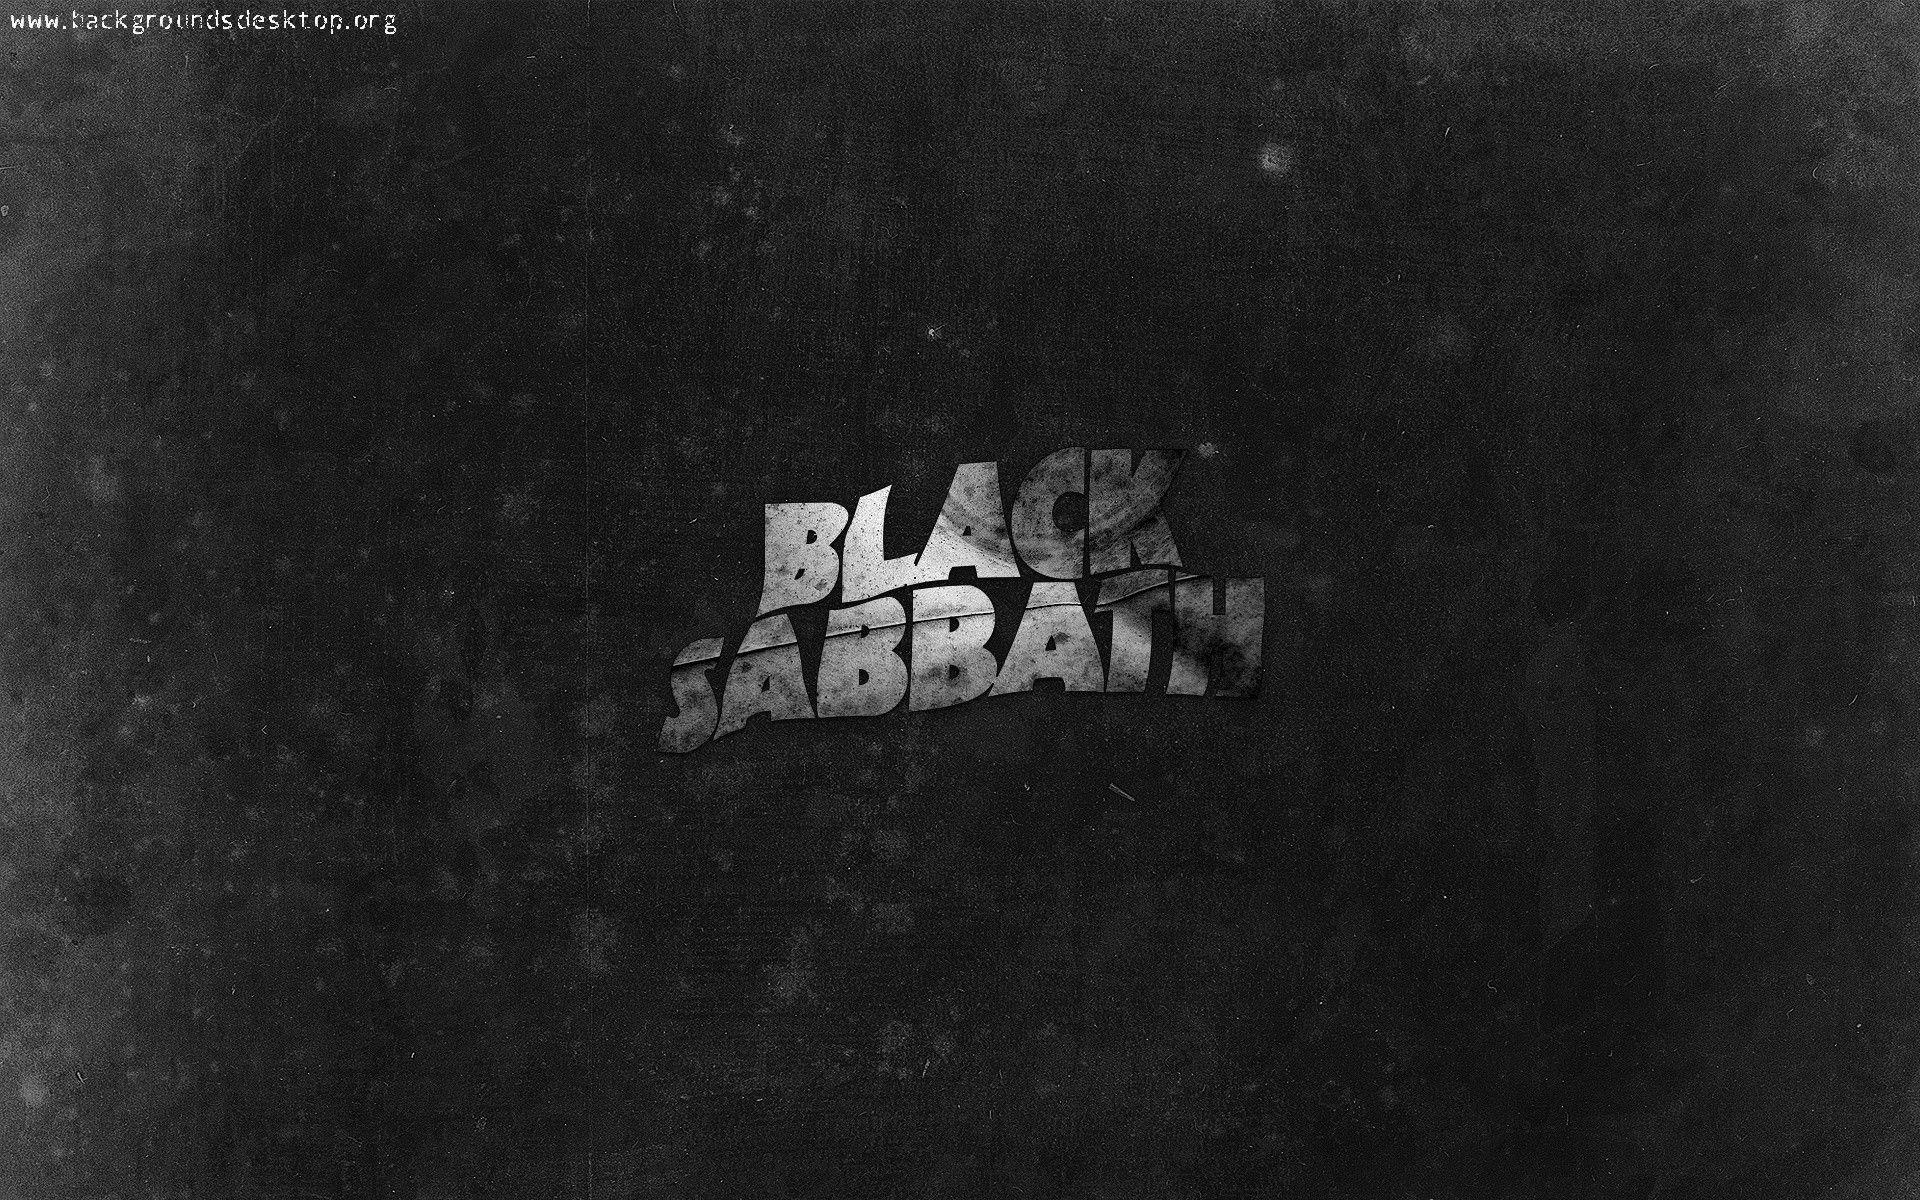 Wallpapers For > Black Sabbath Wallpapers 1920x1080